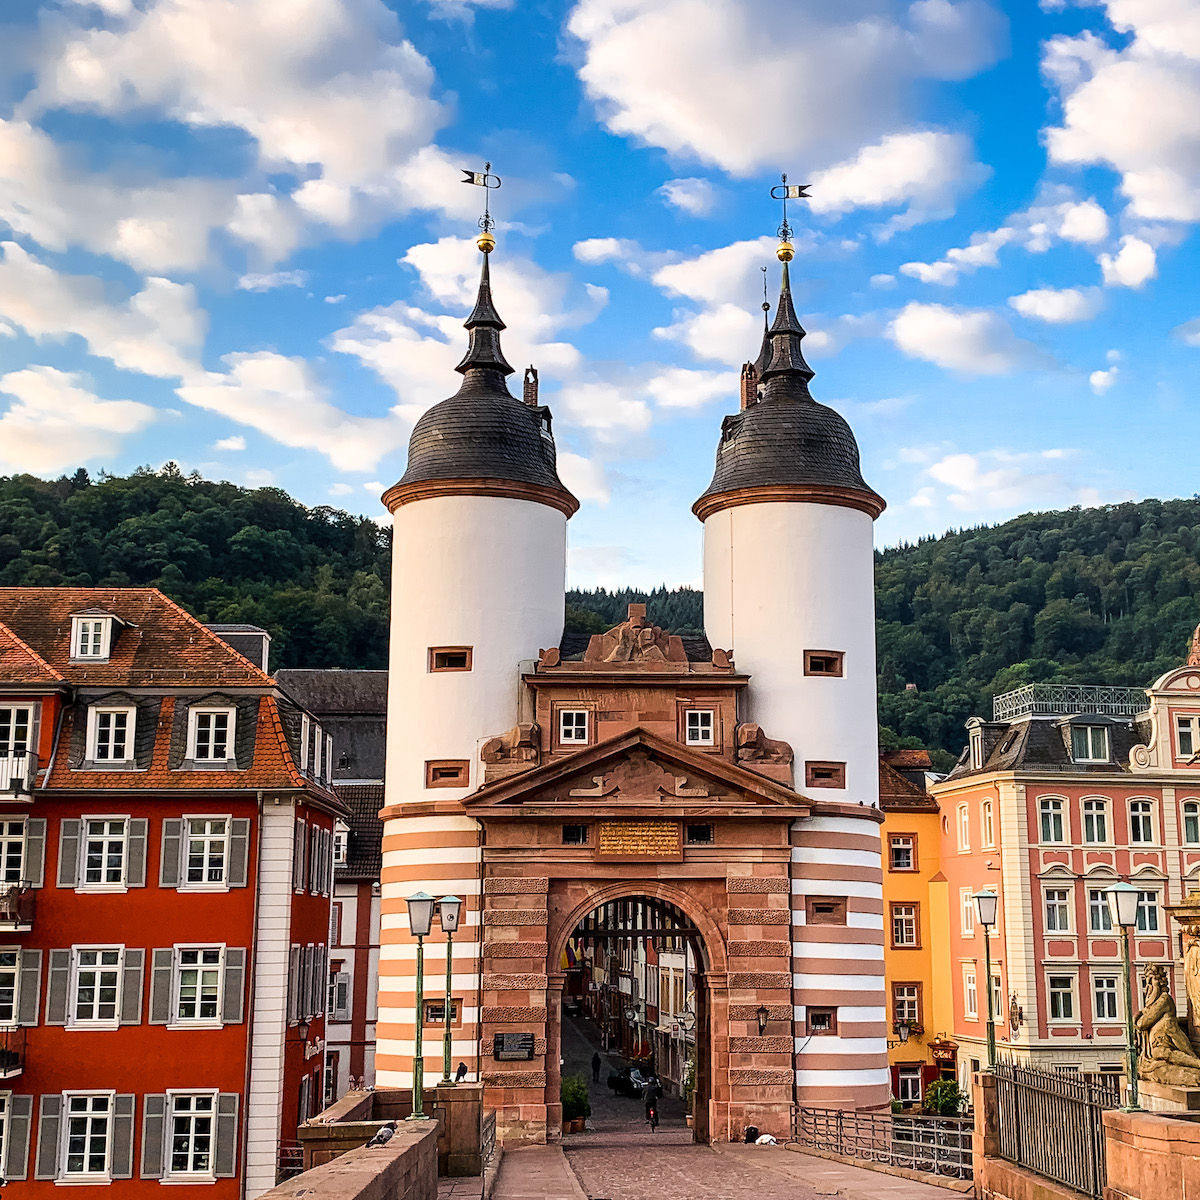 Old Bridge in Heidelberg, Germany.